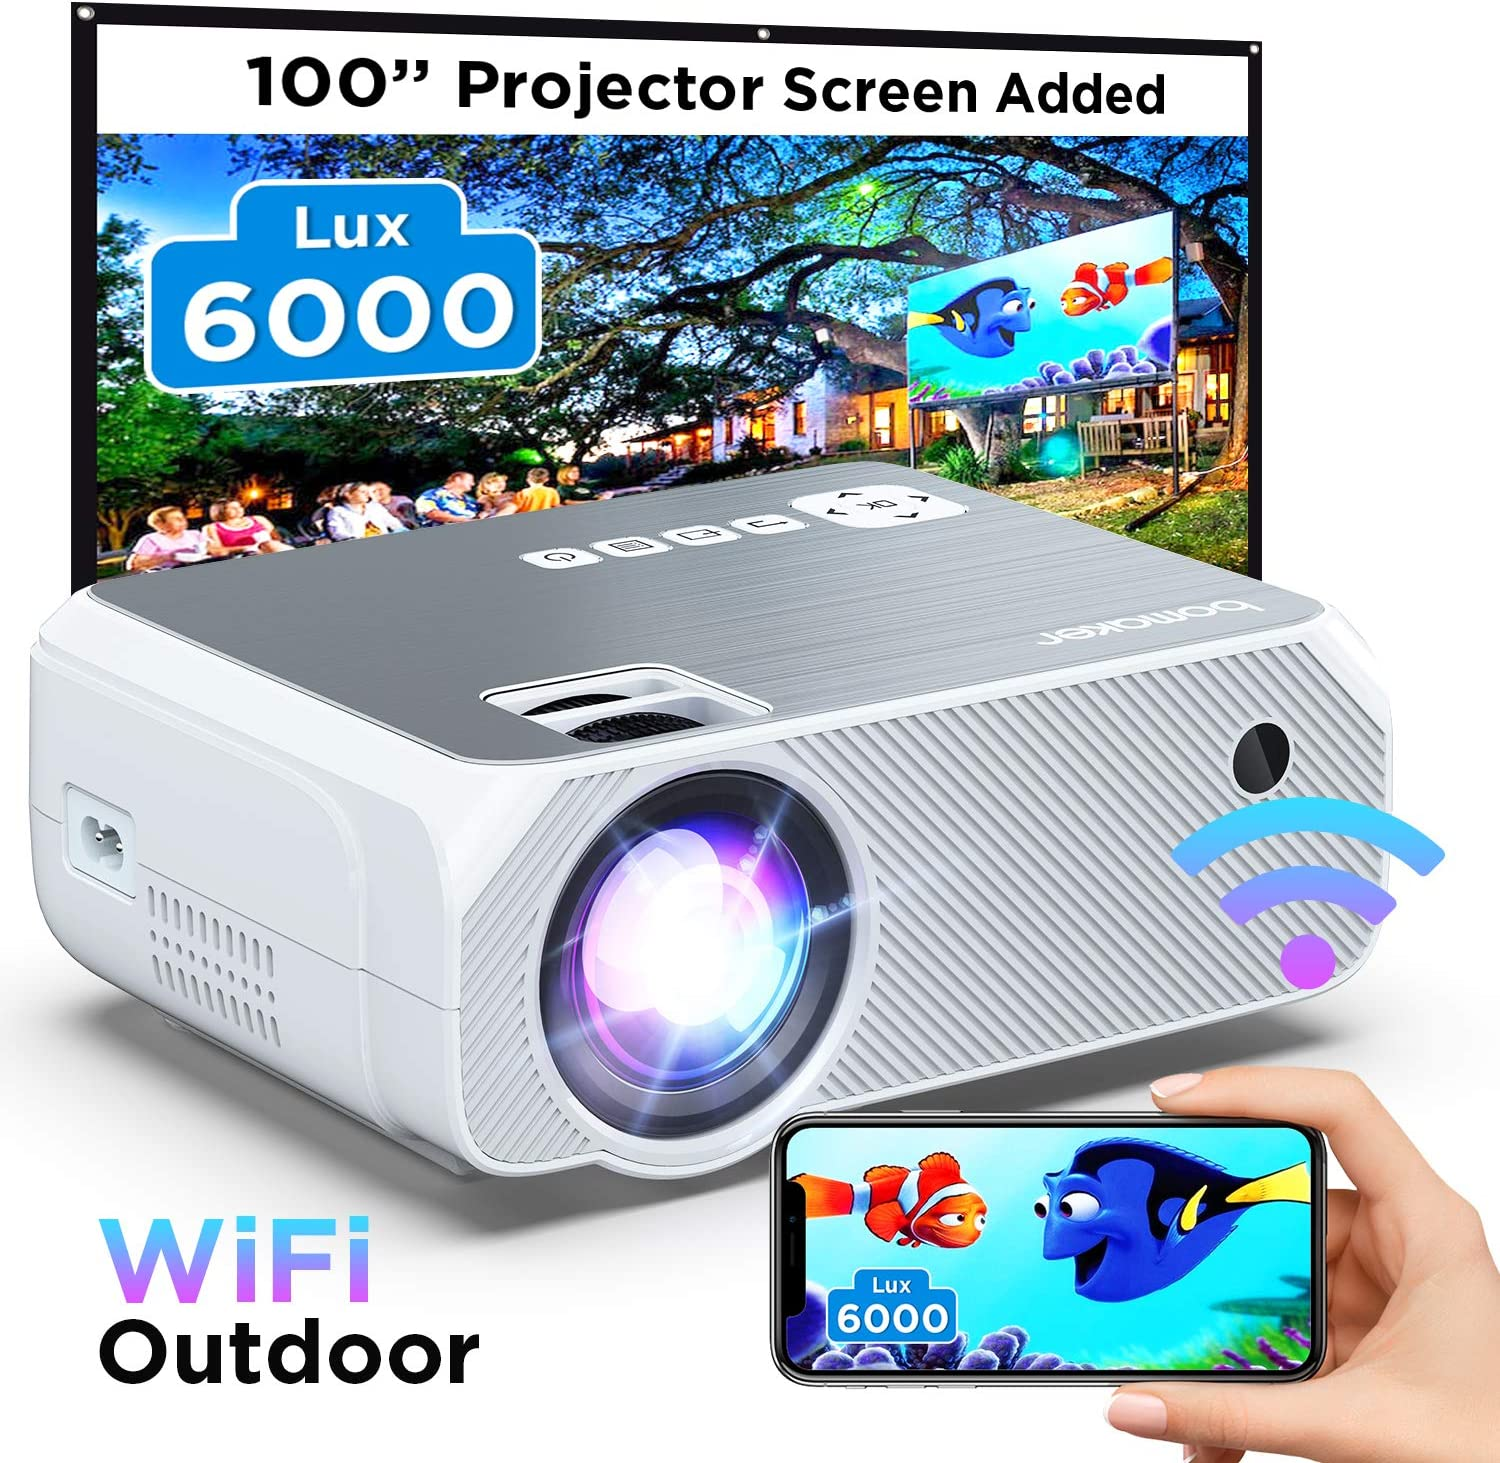 Wi-Fi Mini Projector, 6000 Lux, Bomaker Portable Projector for Outdoor Movies, Full HD 1080P Supported Outdoor Movie Projectors, Wireless Screen Mirroring, for iOS/Android/Laptops/Windows/PCs- White